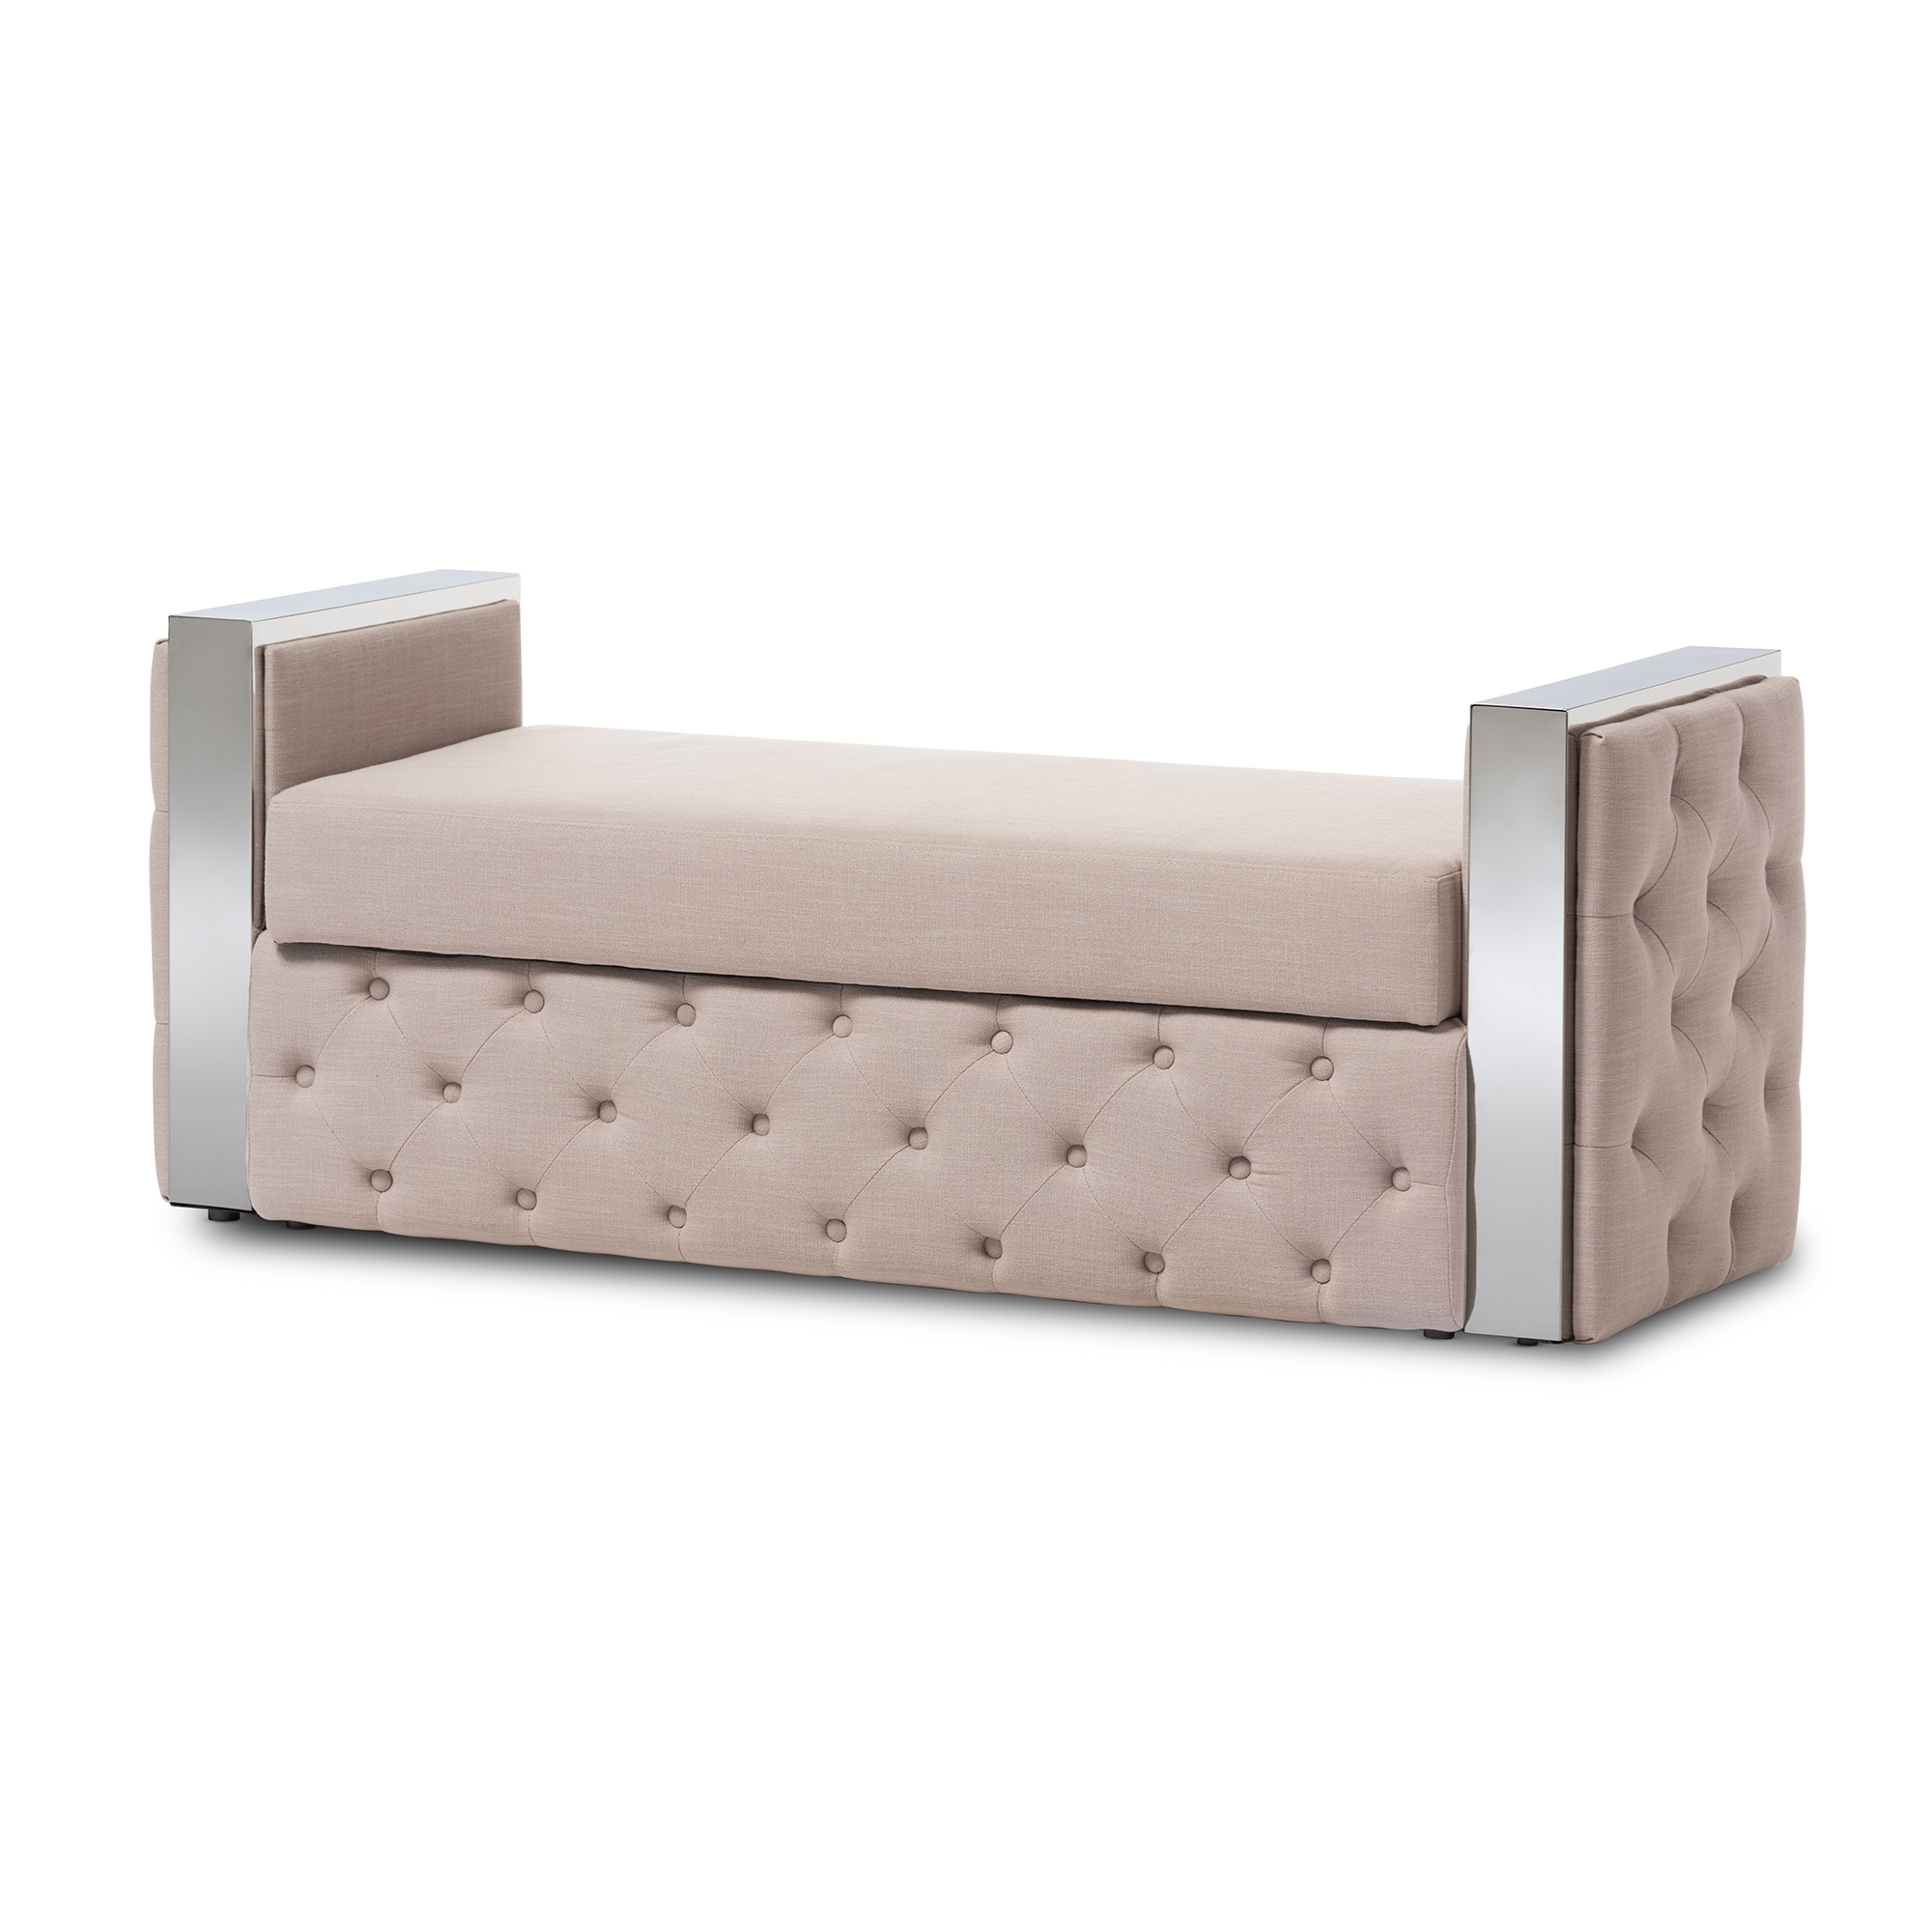 Baxton Studio Fiona Modern and Contemporary Stainless Steel Beige Linen Fabric Button-Tufted Storage Bed End Bench  sc 1 st  Interior Express & Baxton Studio Fiona Modern and Contemporary Stainless Steel Beige ...